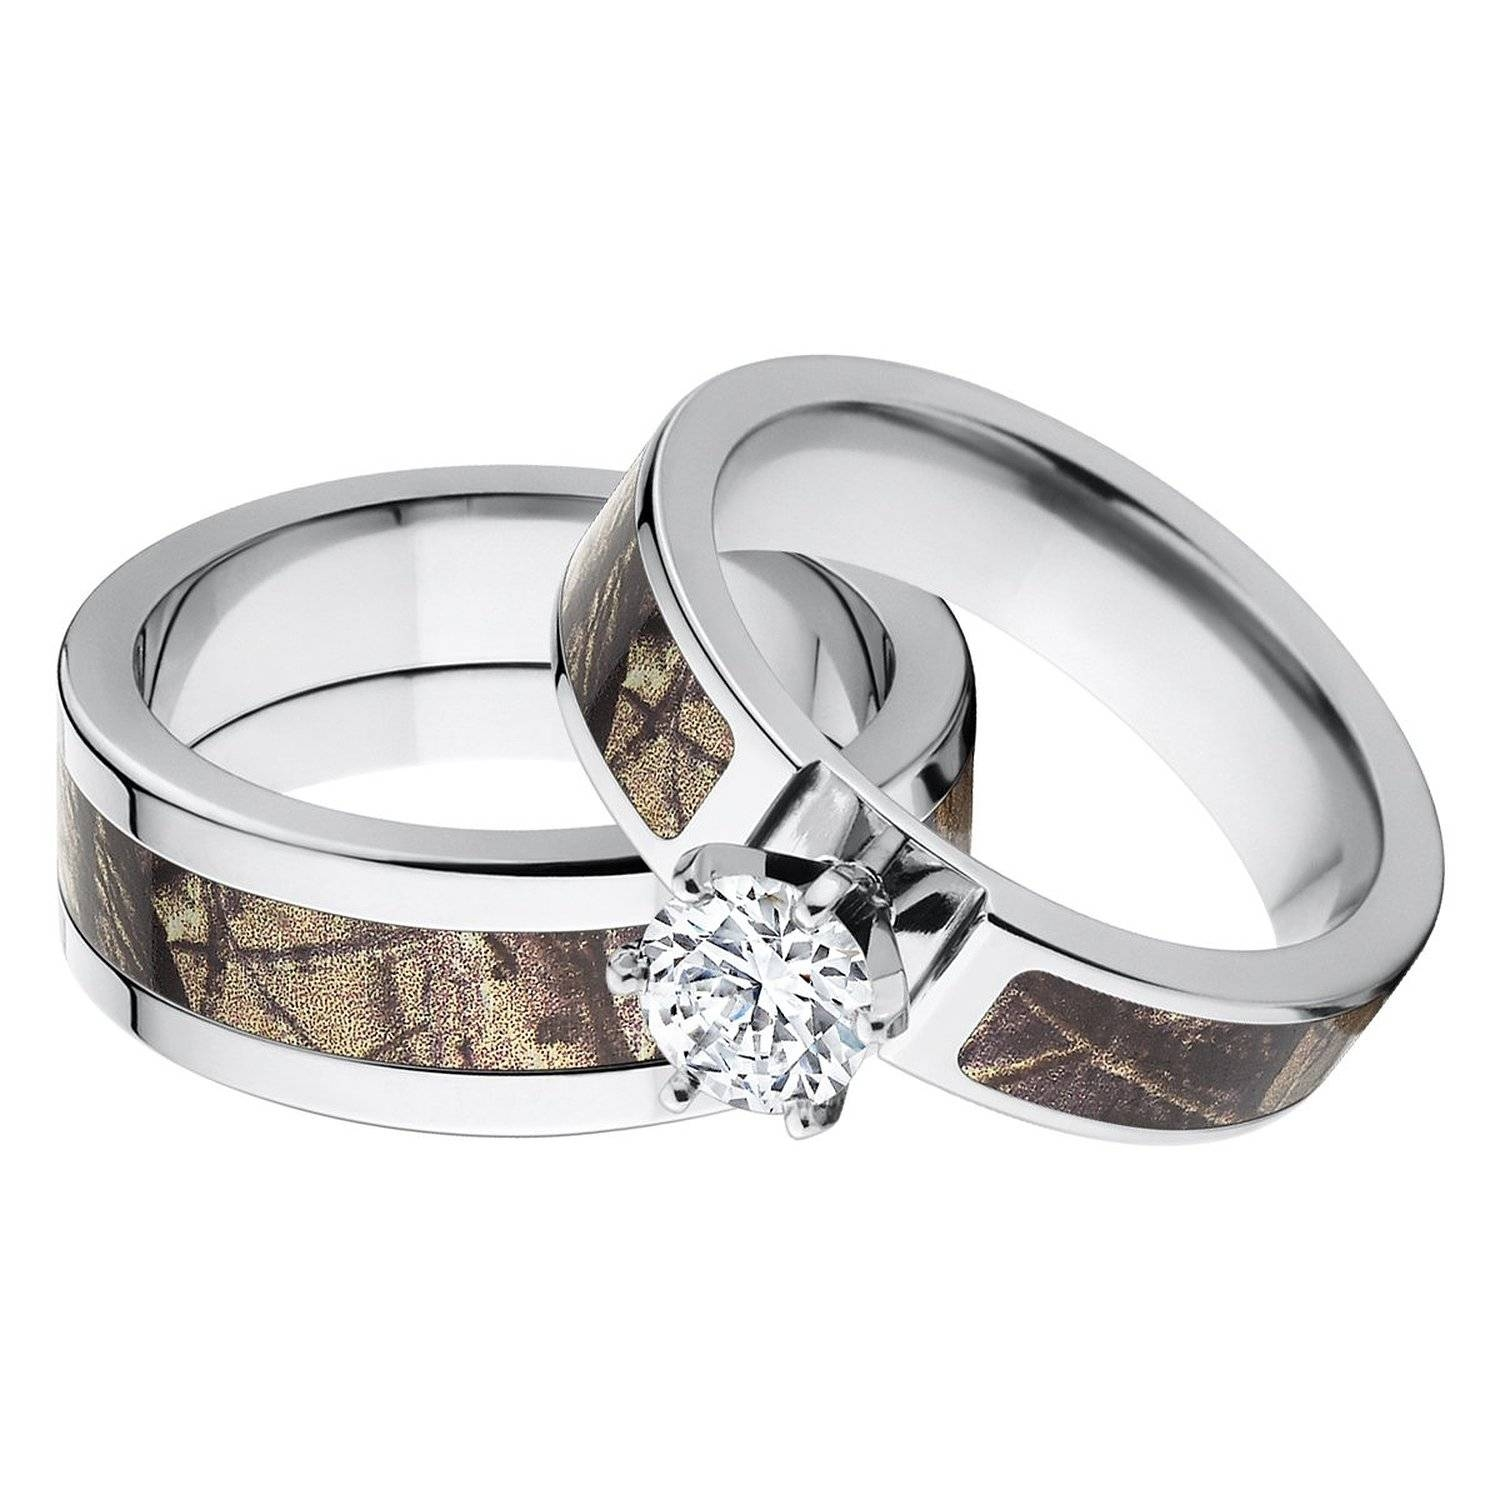 Matching Wedding Bands Show Your Forever Love In A Band | Wedding Inside Camo Wedding Rings With Diamonds (View 8 of 15)